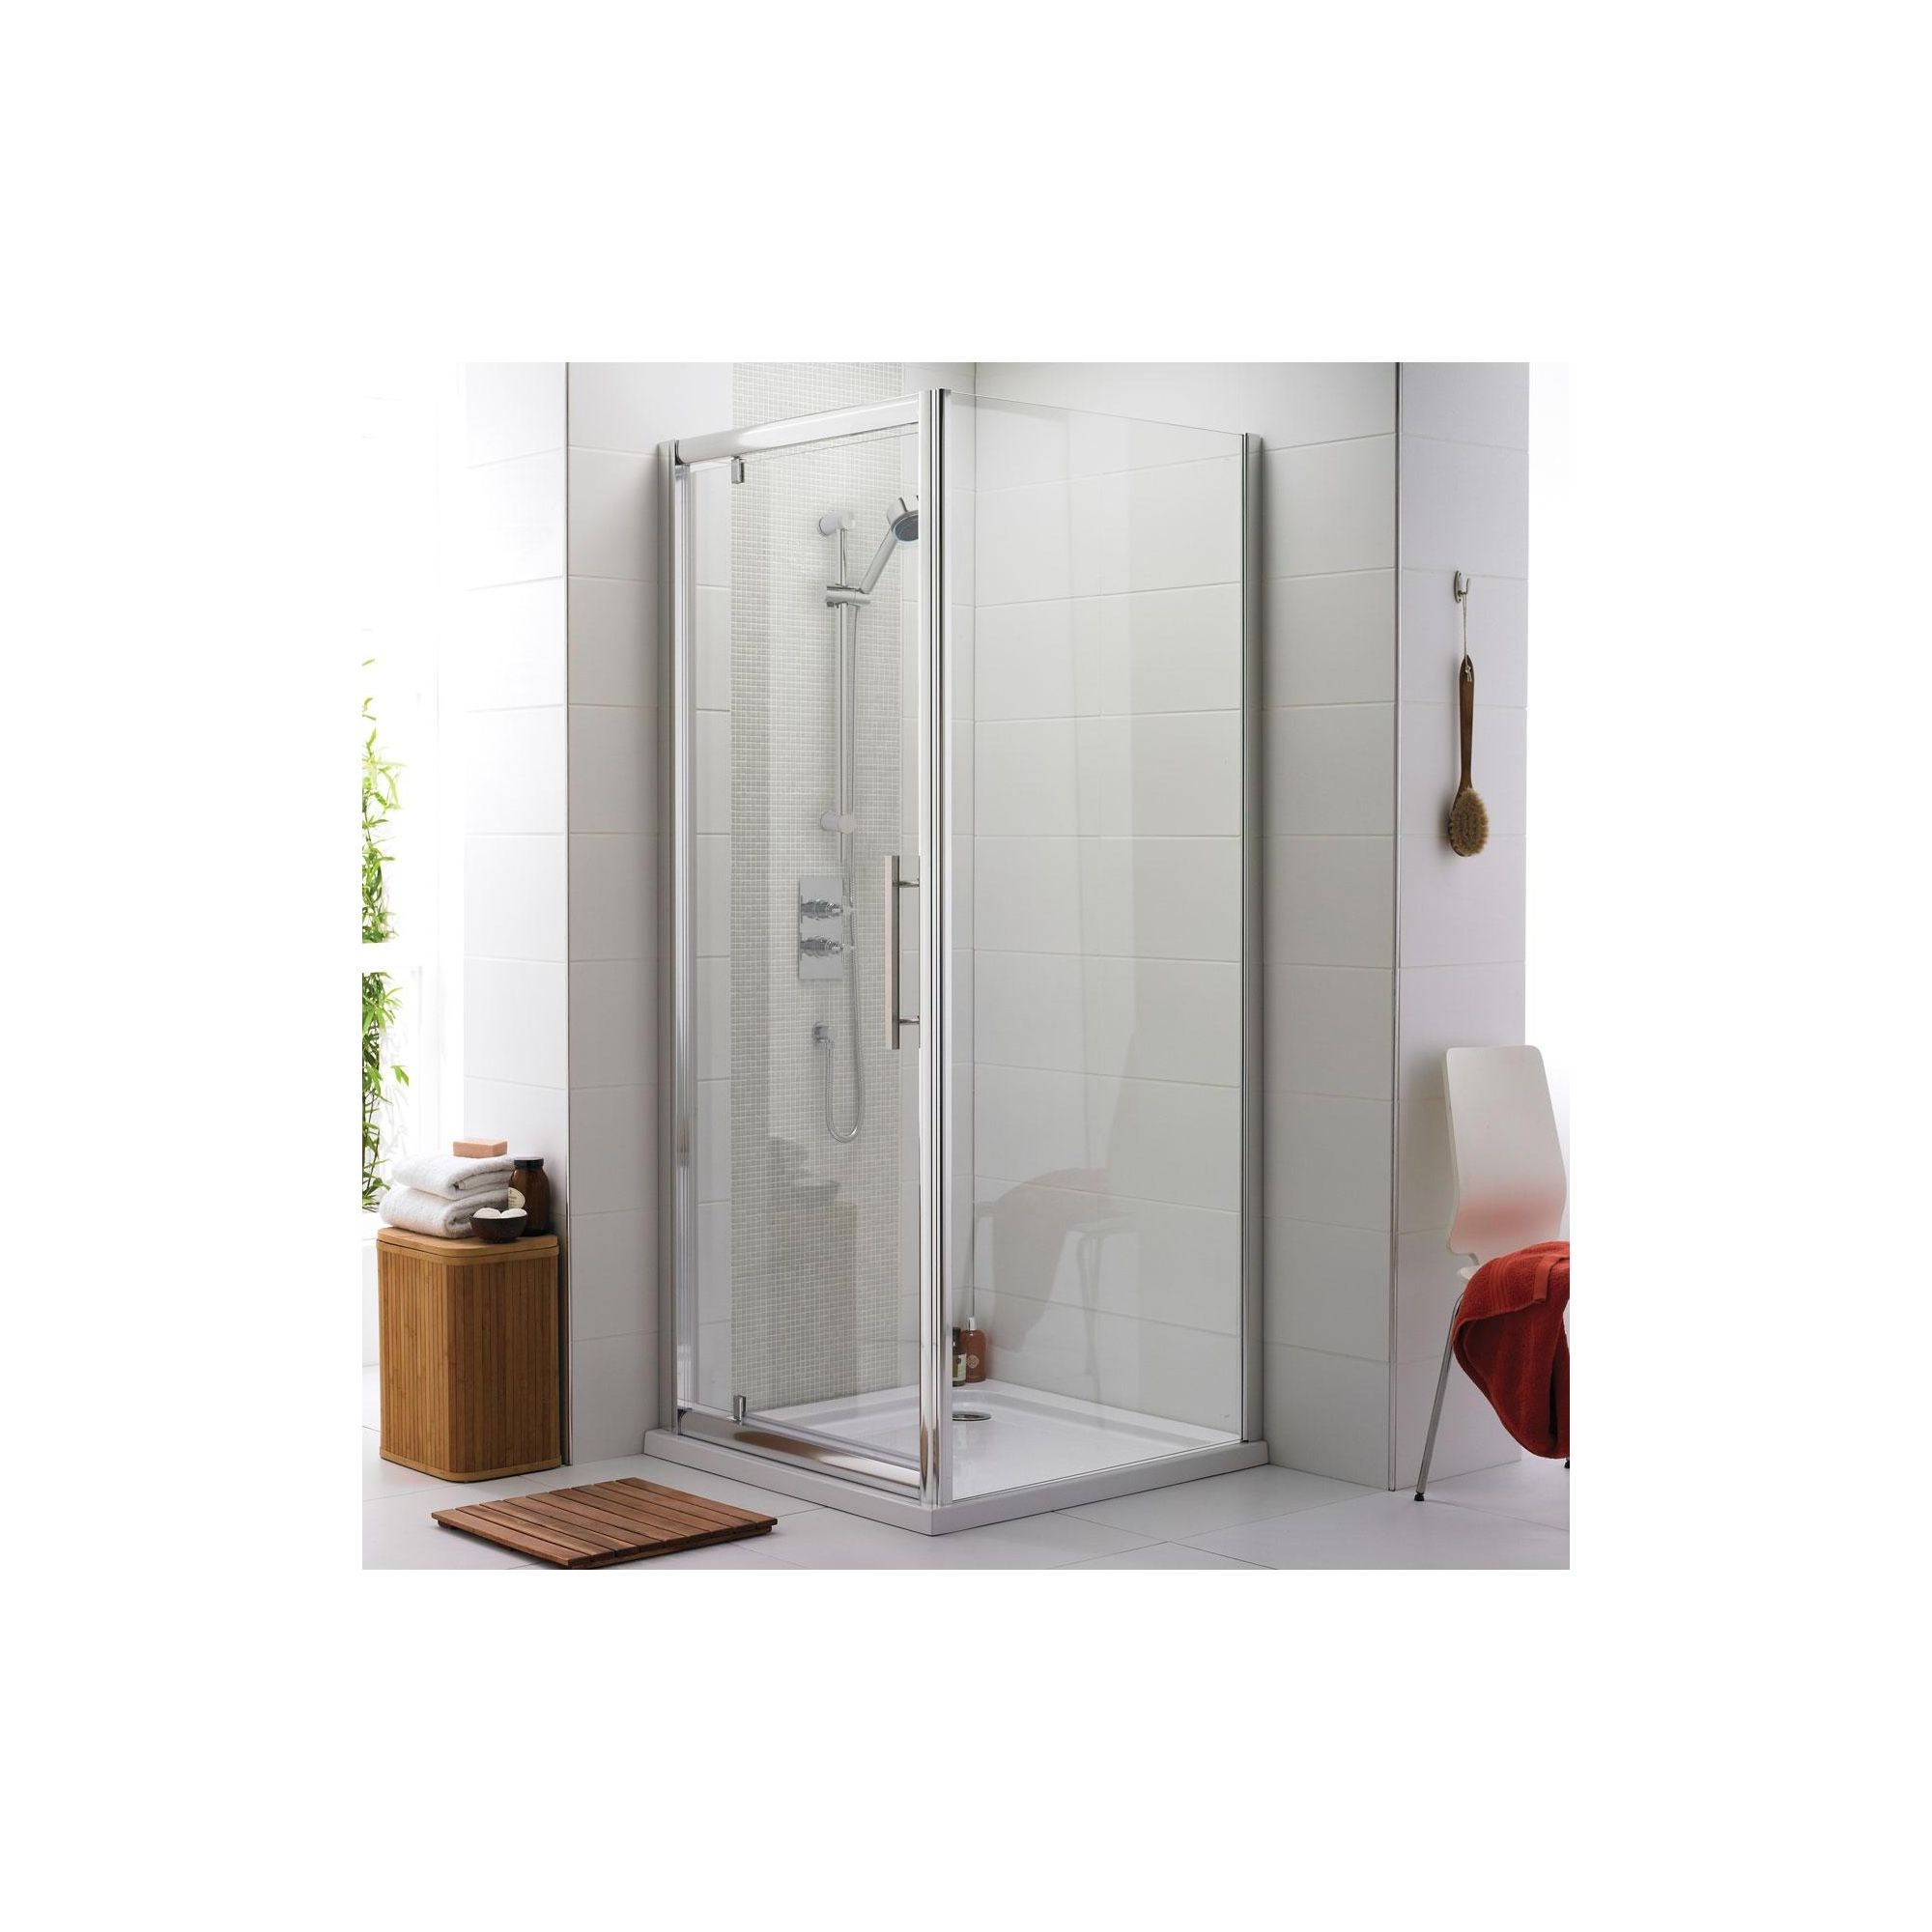 Ultra Roma Pivot Shower Door, 800mm Wide, 6mm Glass at Tesco Direct